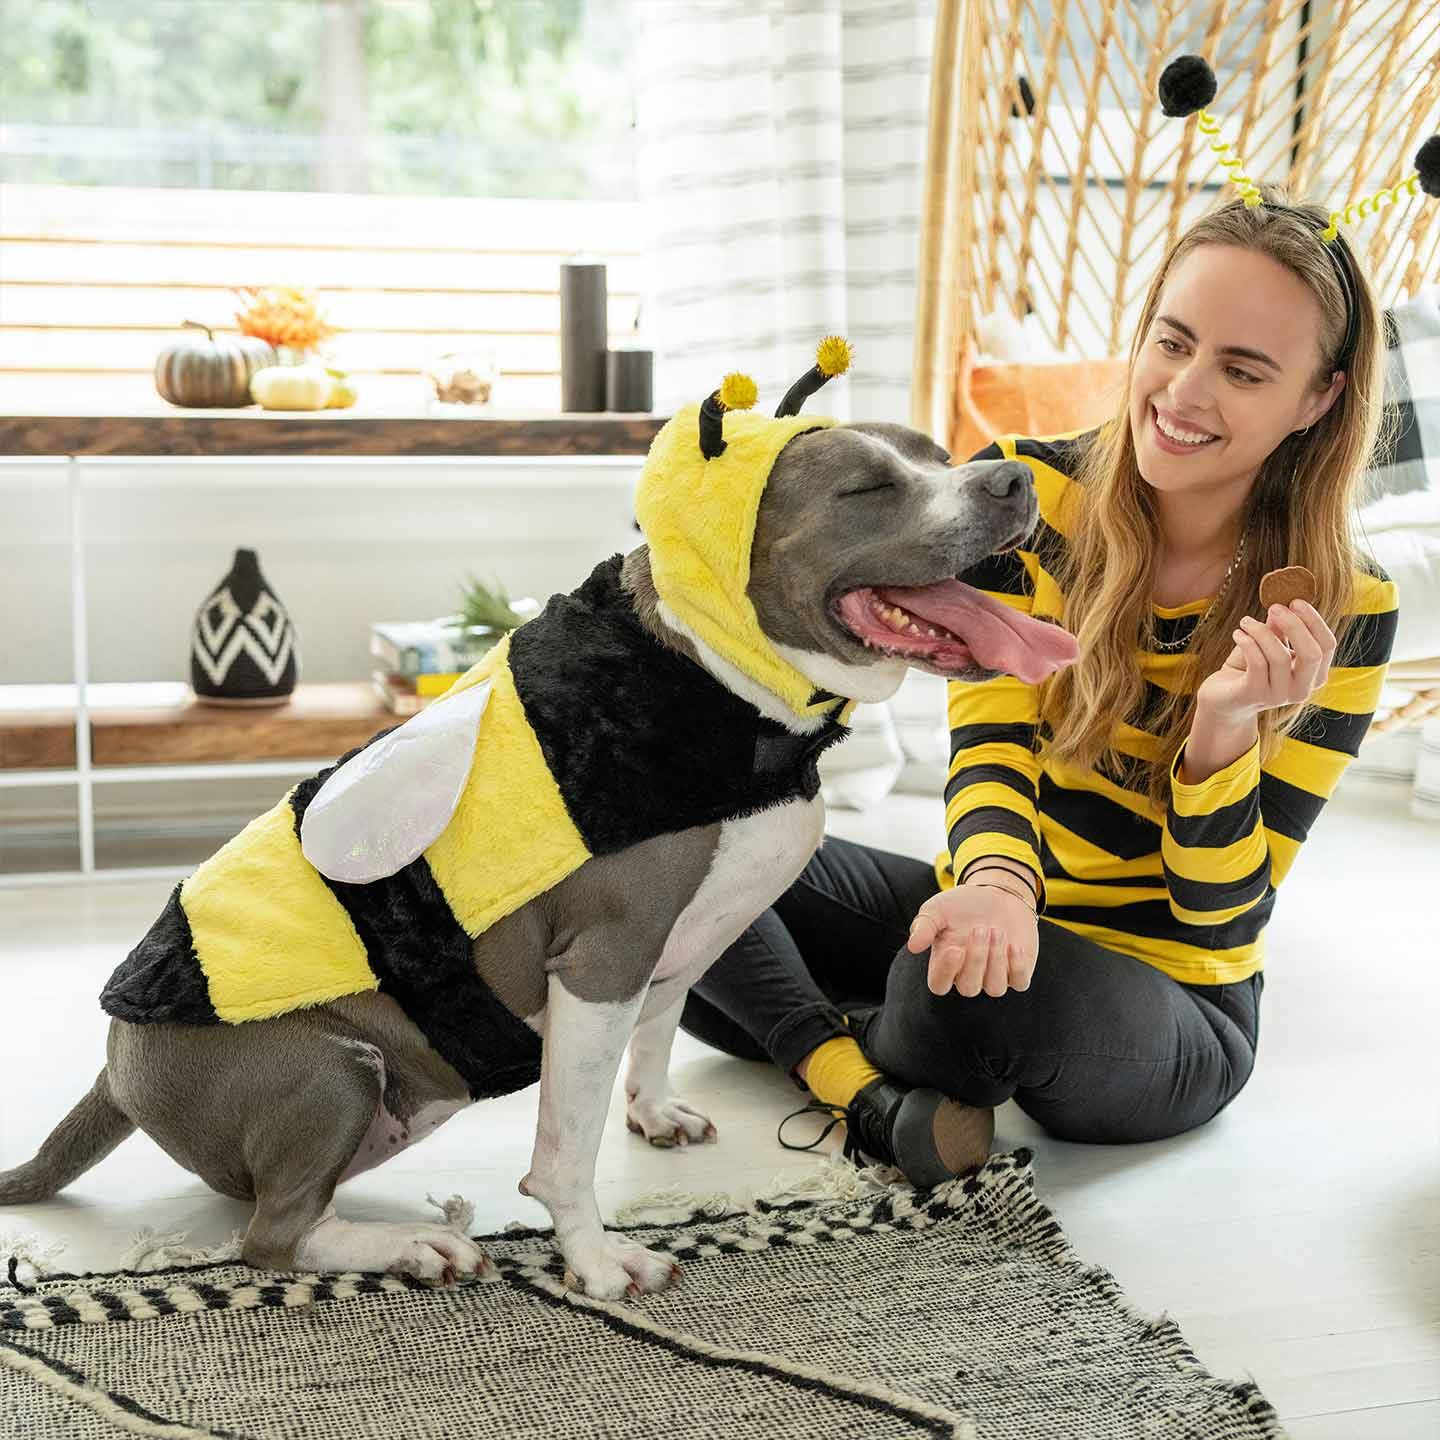 Halloween Costumes for Dog and Owner